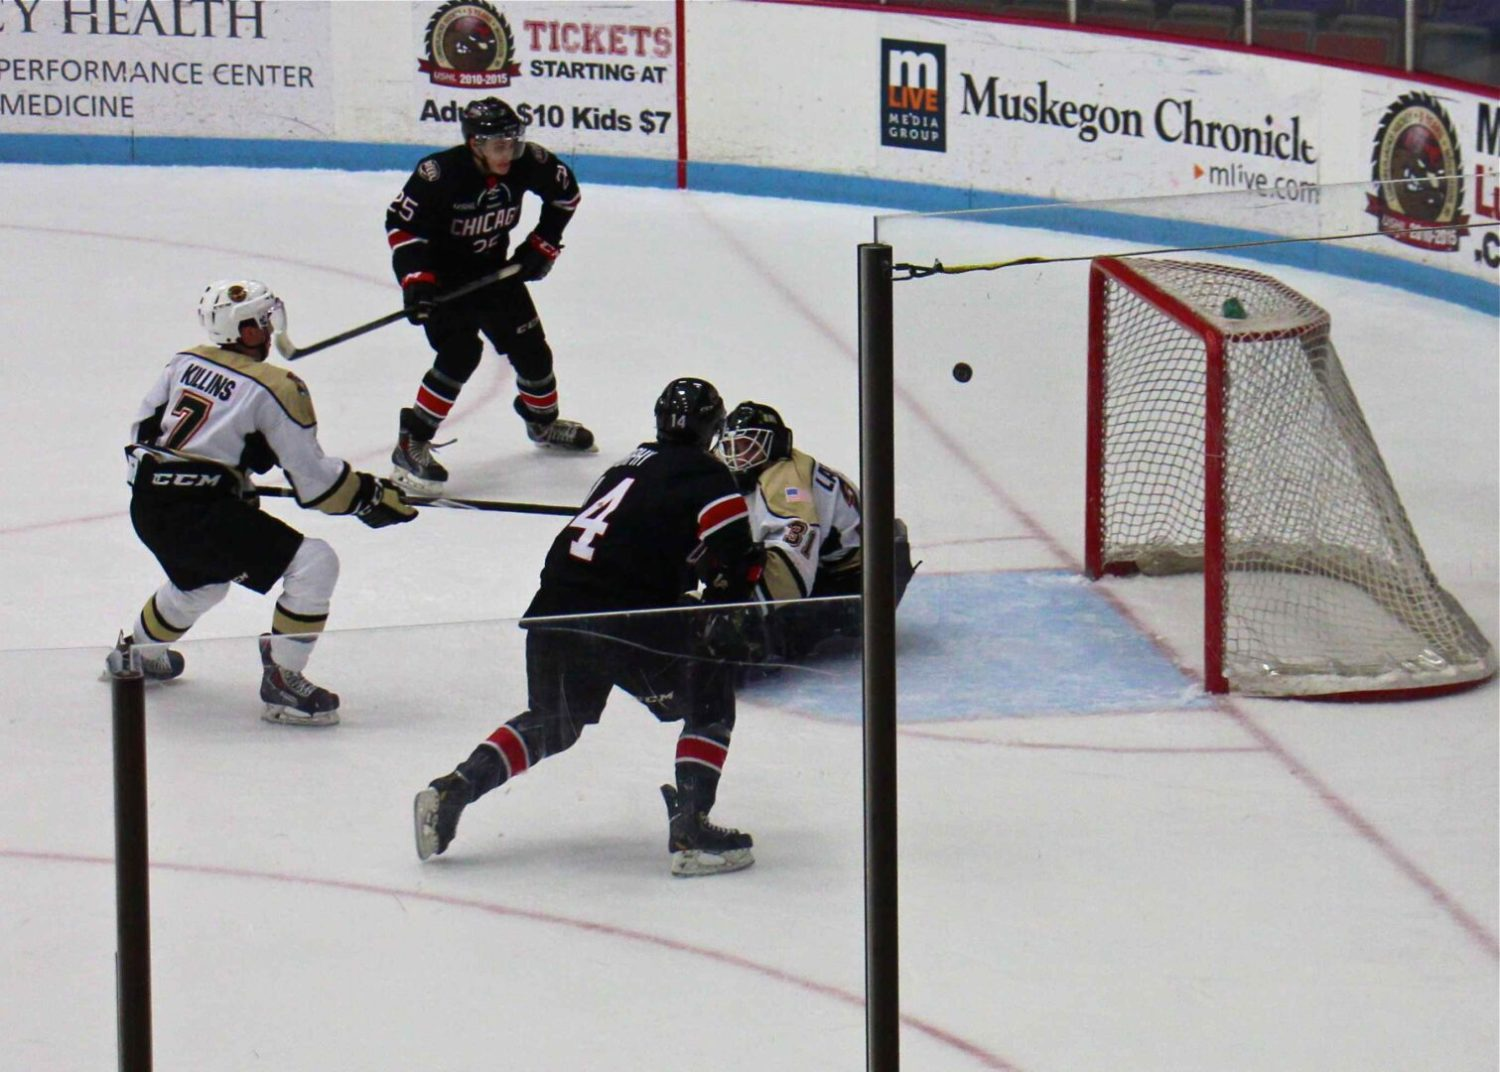 Bo Hanson's late goal gives the Lumberjacks a 5-4 victory over the Chicago Steel